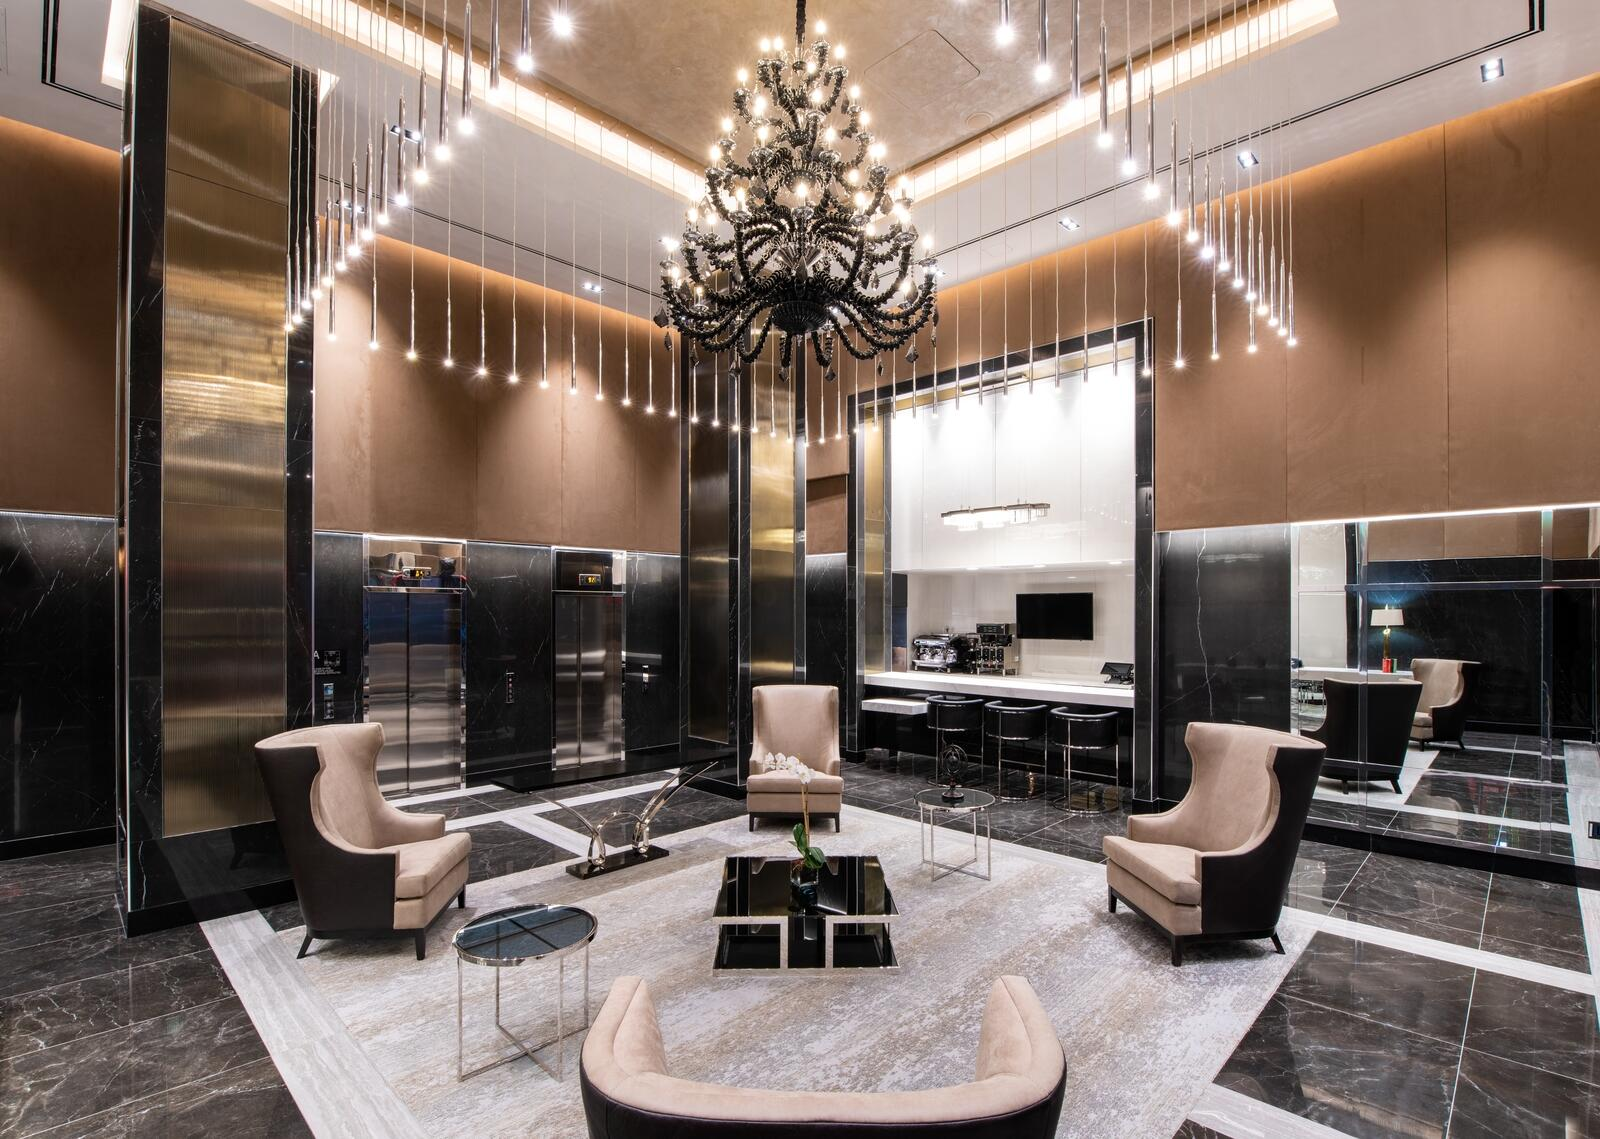 reception area of hotel with chairs and chandeliers